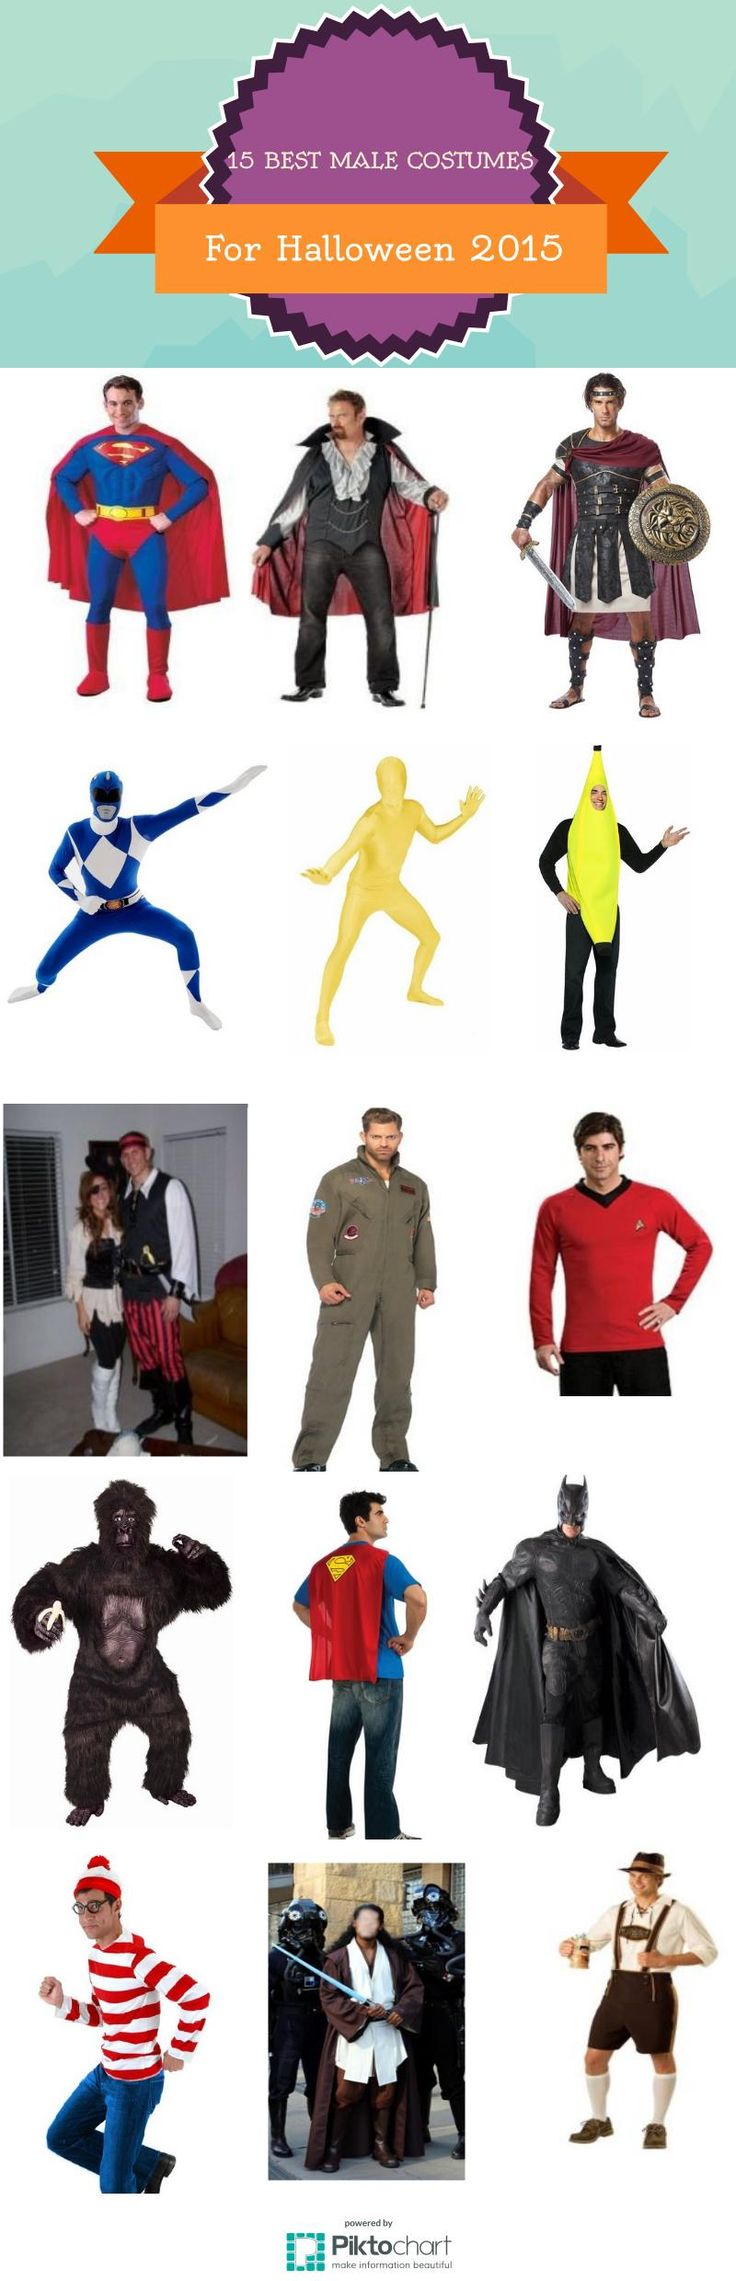 Best Male Halloween Costumes 2015. Some have gone cool and cute, often go with characters from movie flicks. #halloween #costume